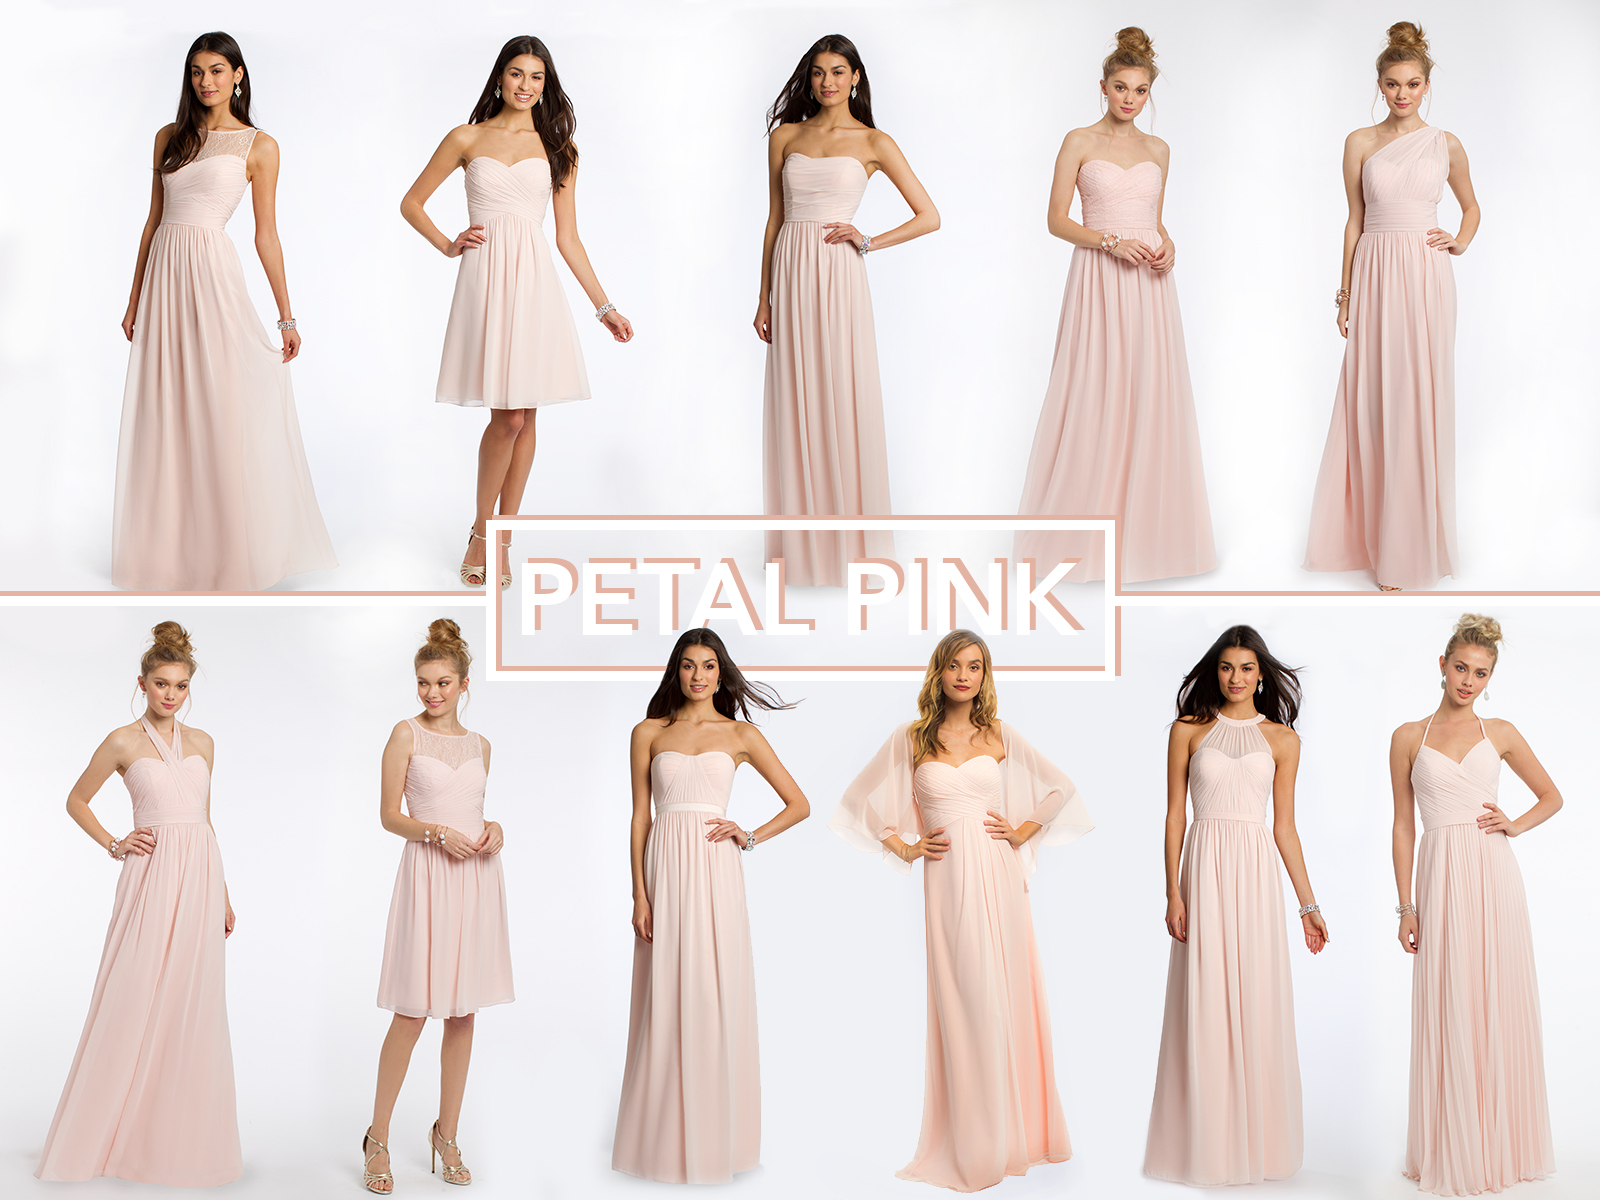 Petal Pink Bridesmaid Dresses by Camille La Vie